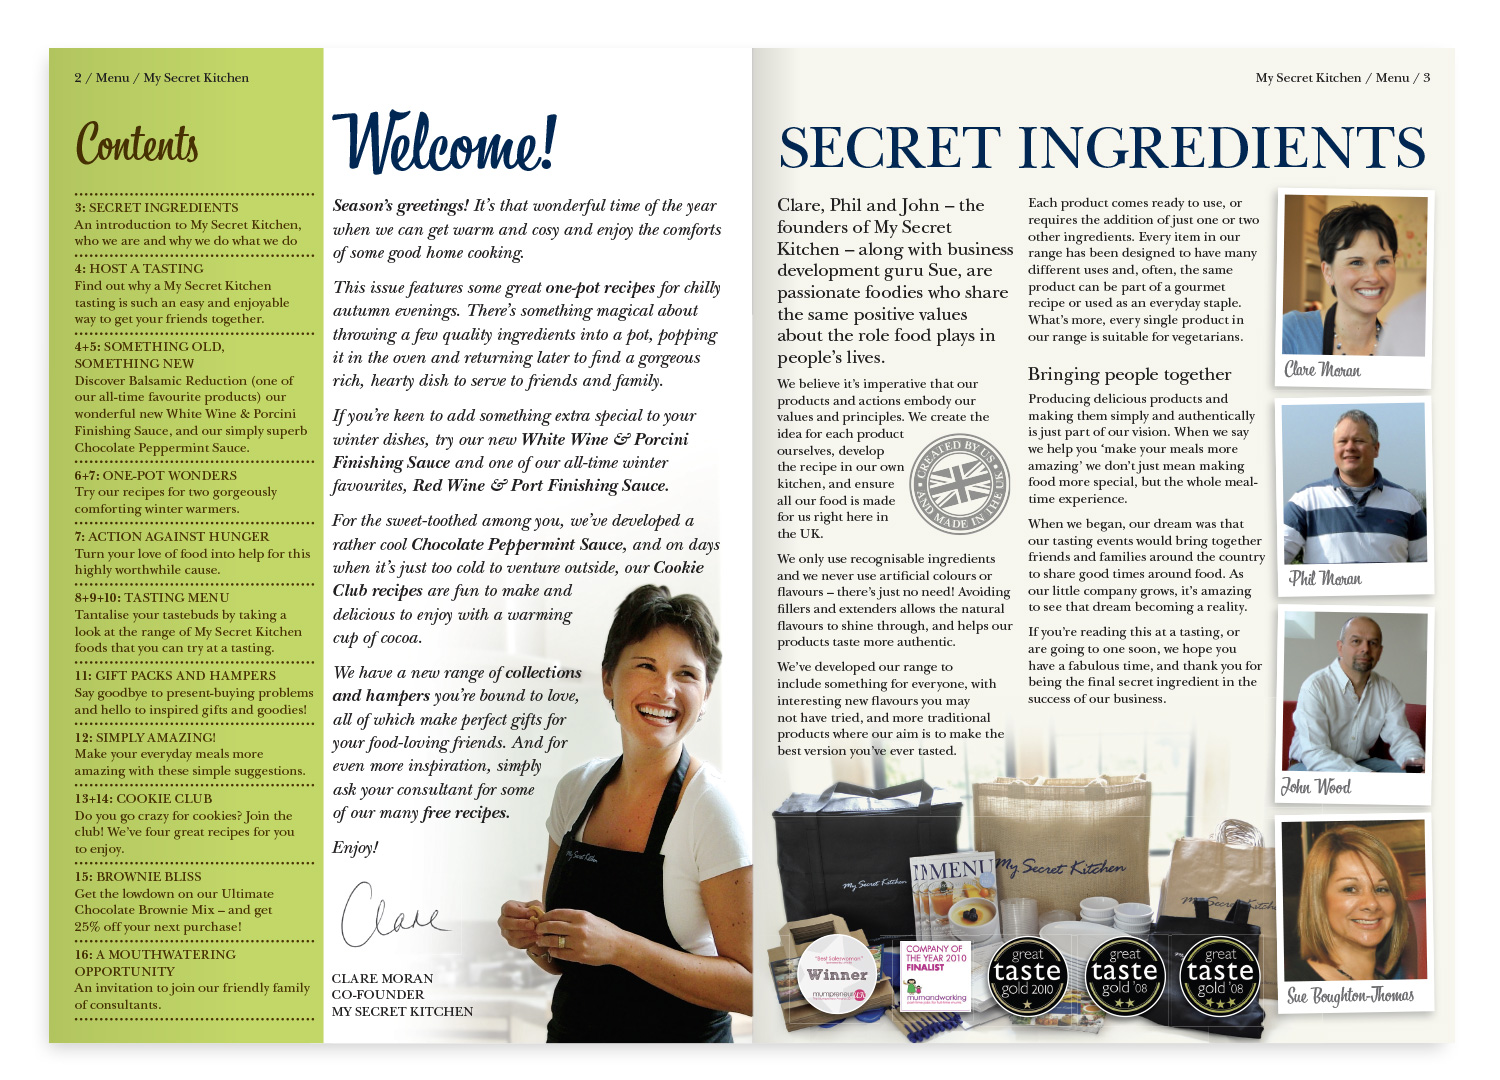 My Secret Kitchen 'Menu' magazine